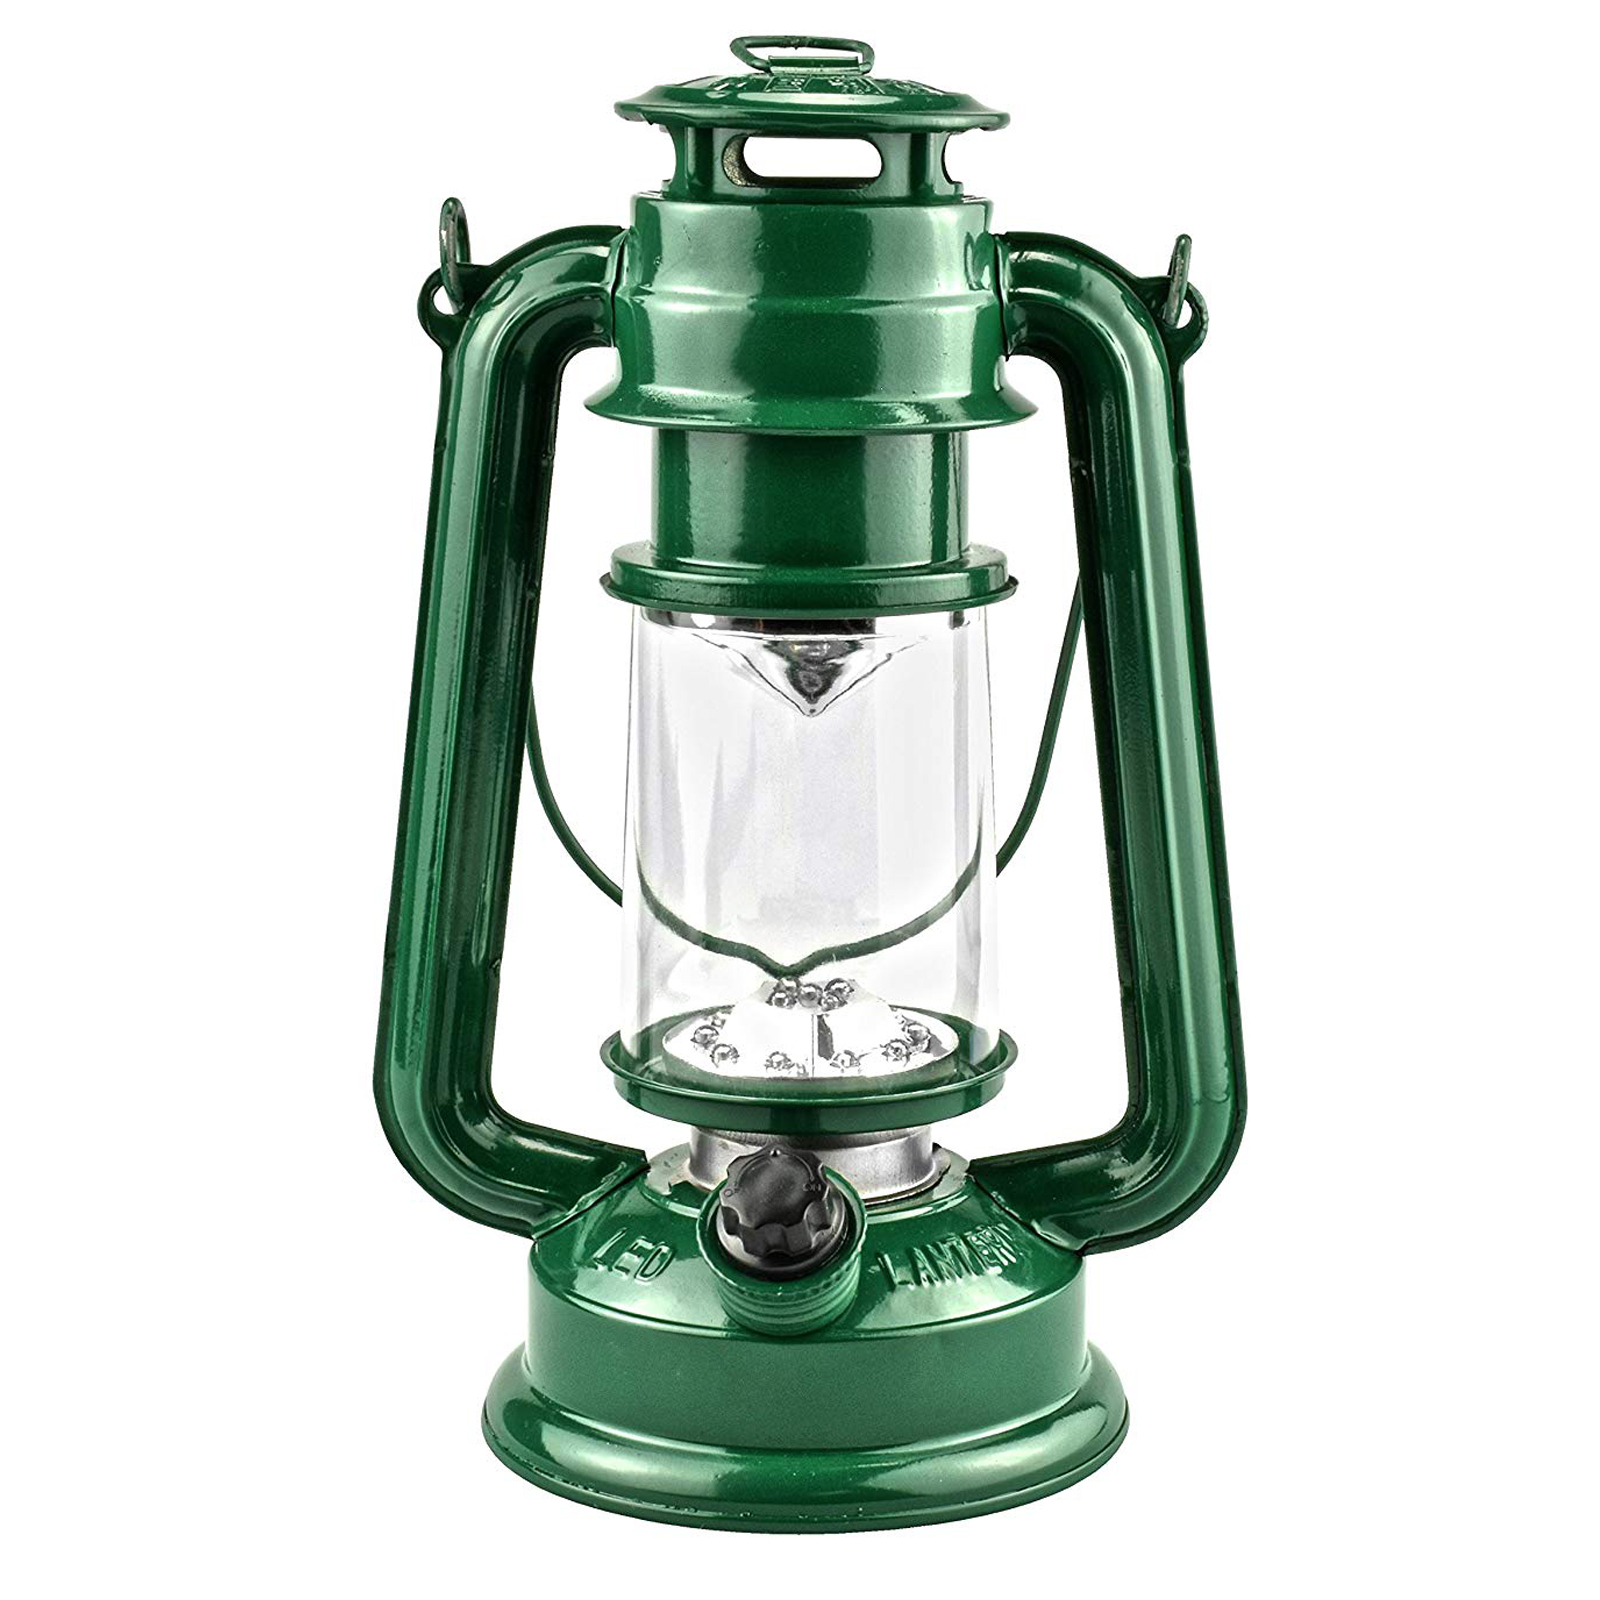 Porch Light Green: ASR Outdoor 15 LED 9.5 Hurricane Hanging Lantern Camping